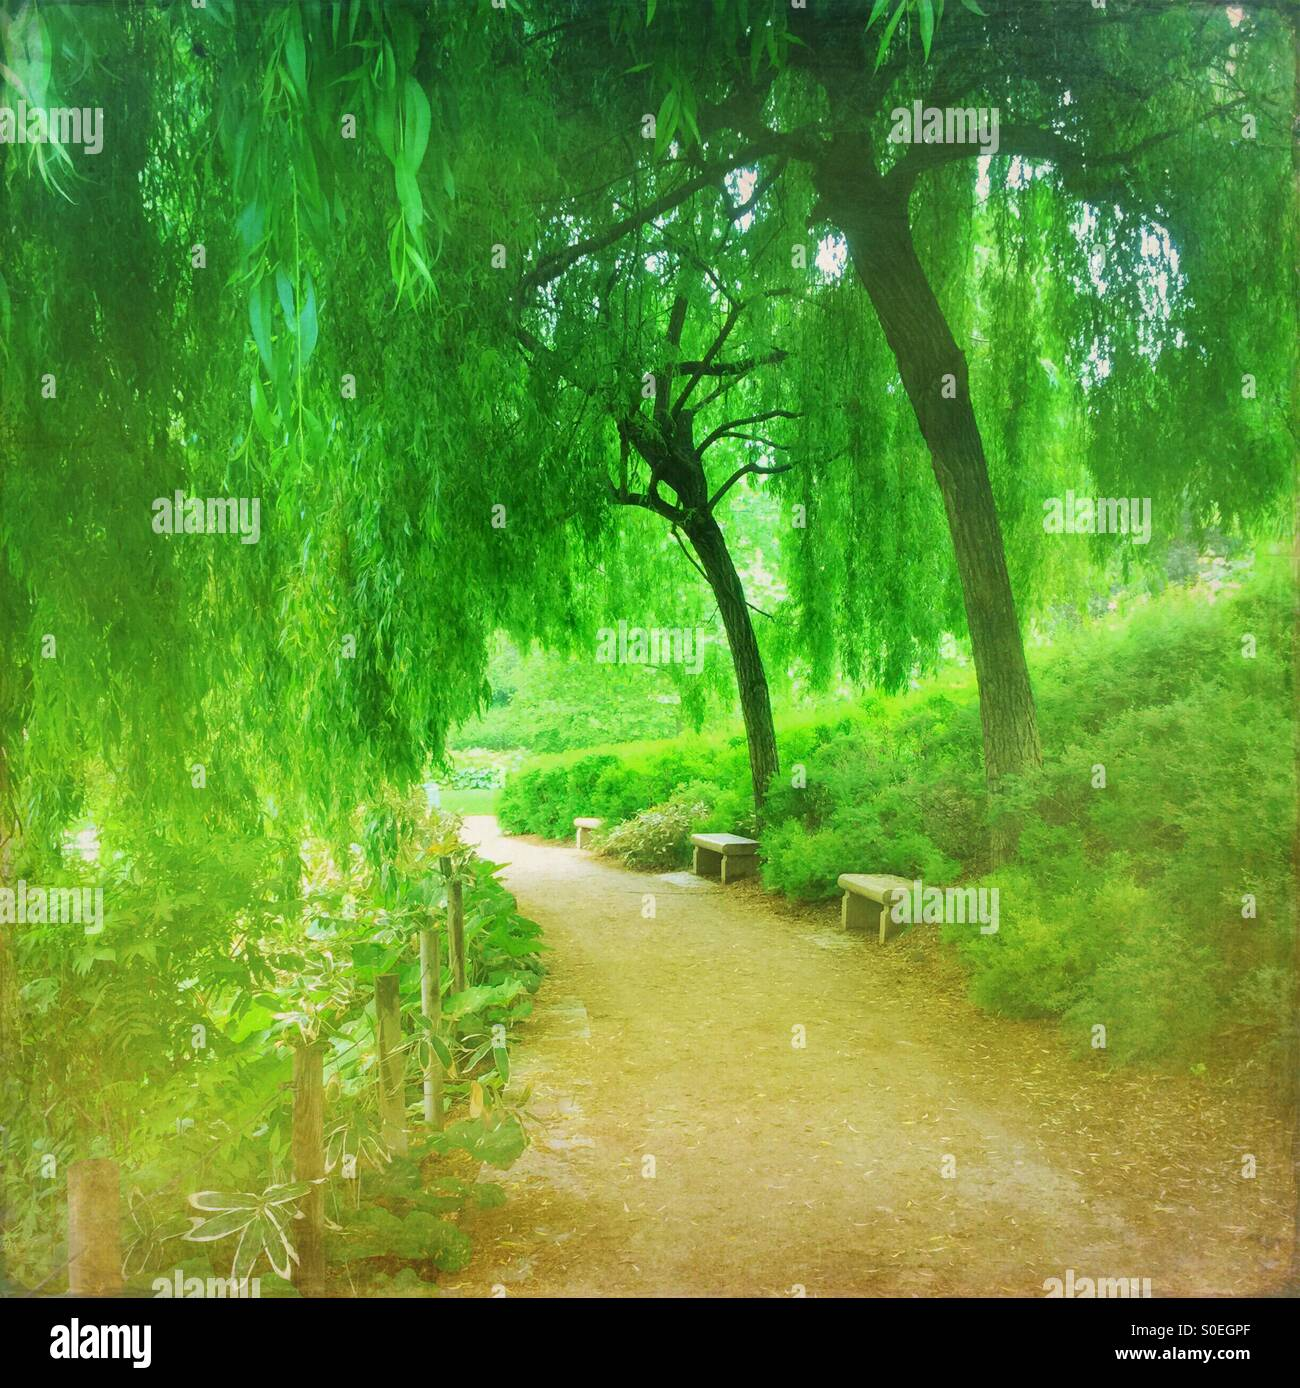 Verdant green Parc de Bercy with weeping willow trees and fresh Spring foliage in Paris, France. Vintage texture Stock Photo